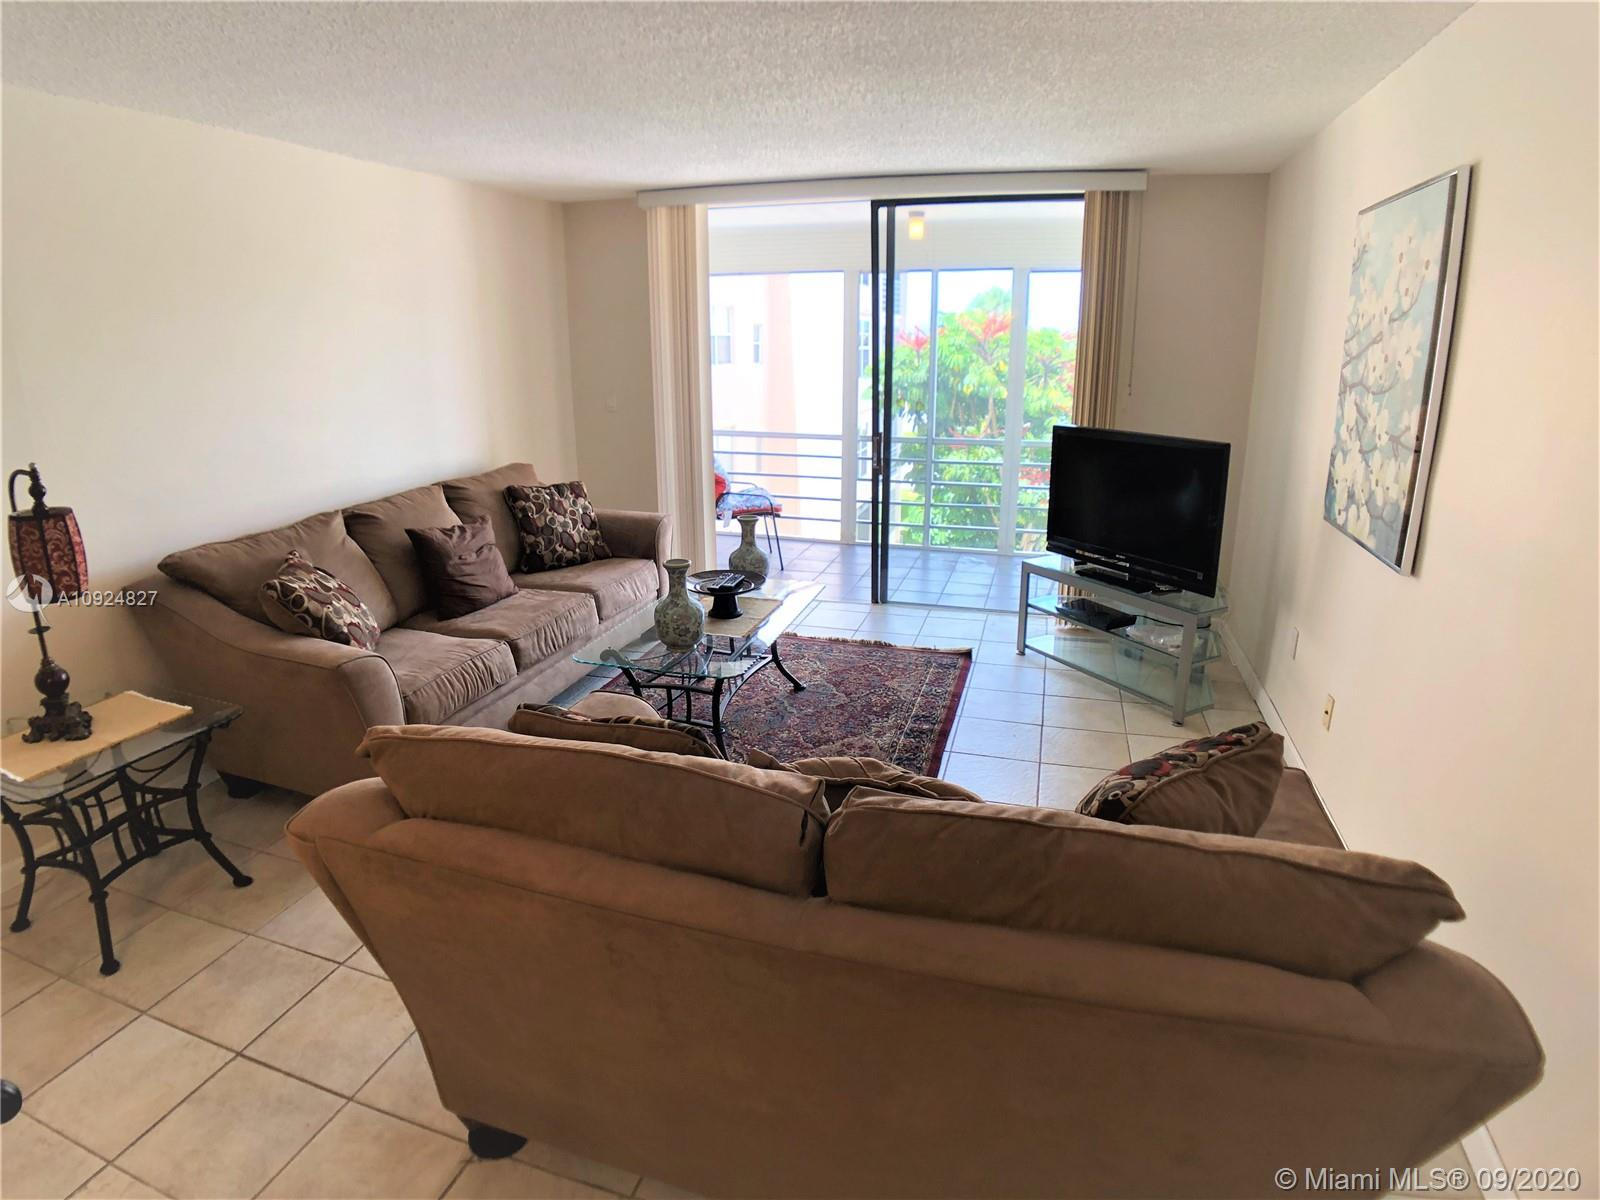 Beautiful 3rd-floord Corner unit. BRAND NEW AC. Gated Adult 55+ Community. Security 24/7. Spacious 2 bed, 2 baths with large bedrooms and a spacious living room for entertaining friends and family. Amenities include pool, tennis court, shuffleboard, and picnic areas. Cable/Tv included in maintenance fee. No pets policy. Rental after 3 years.